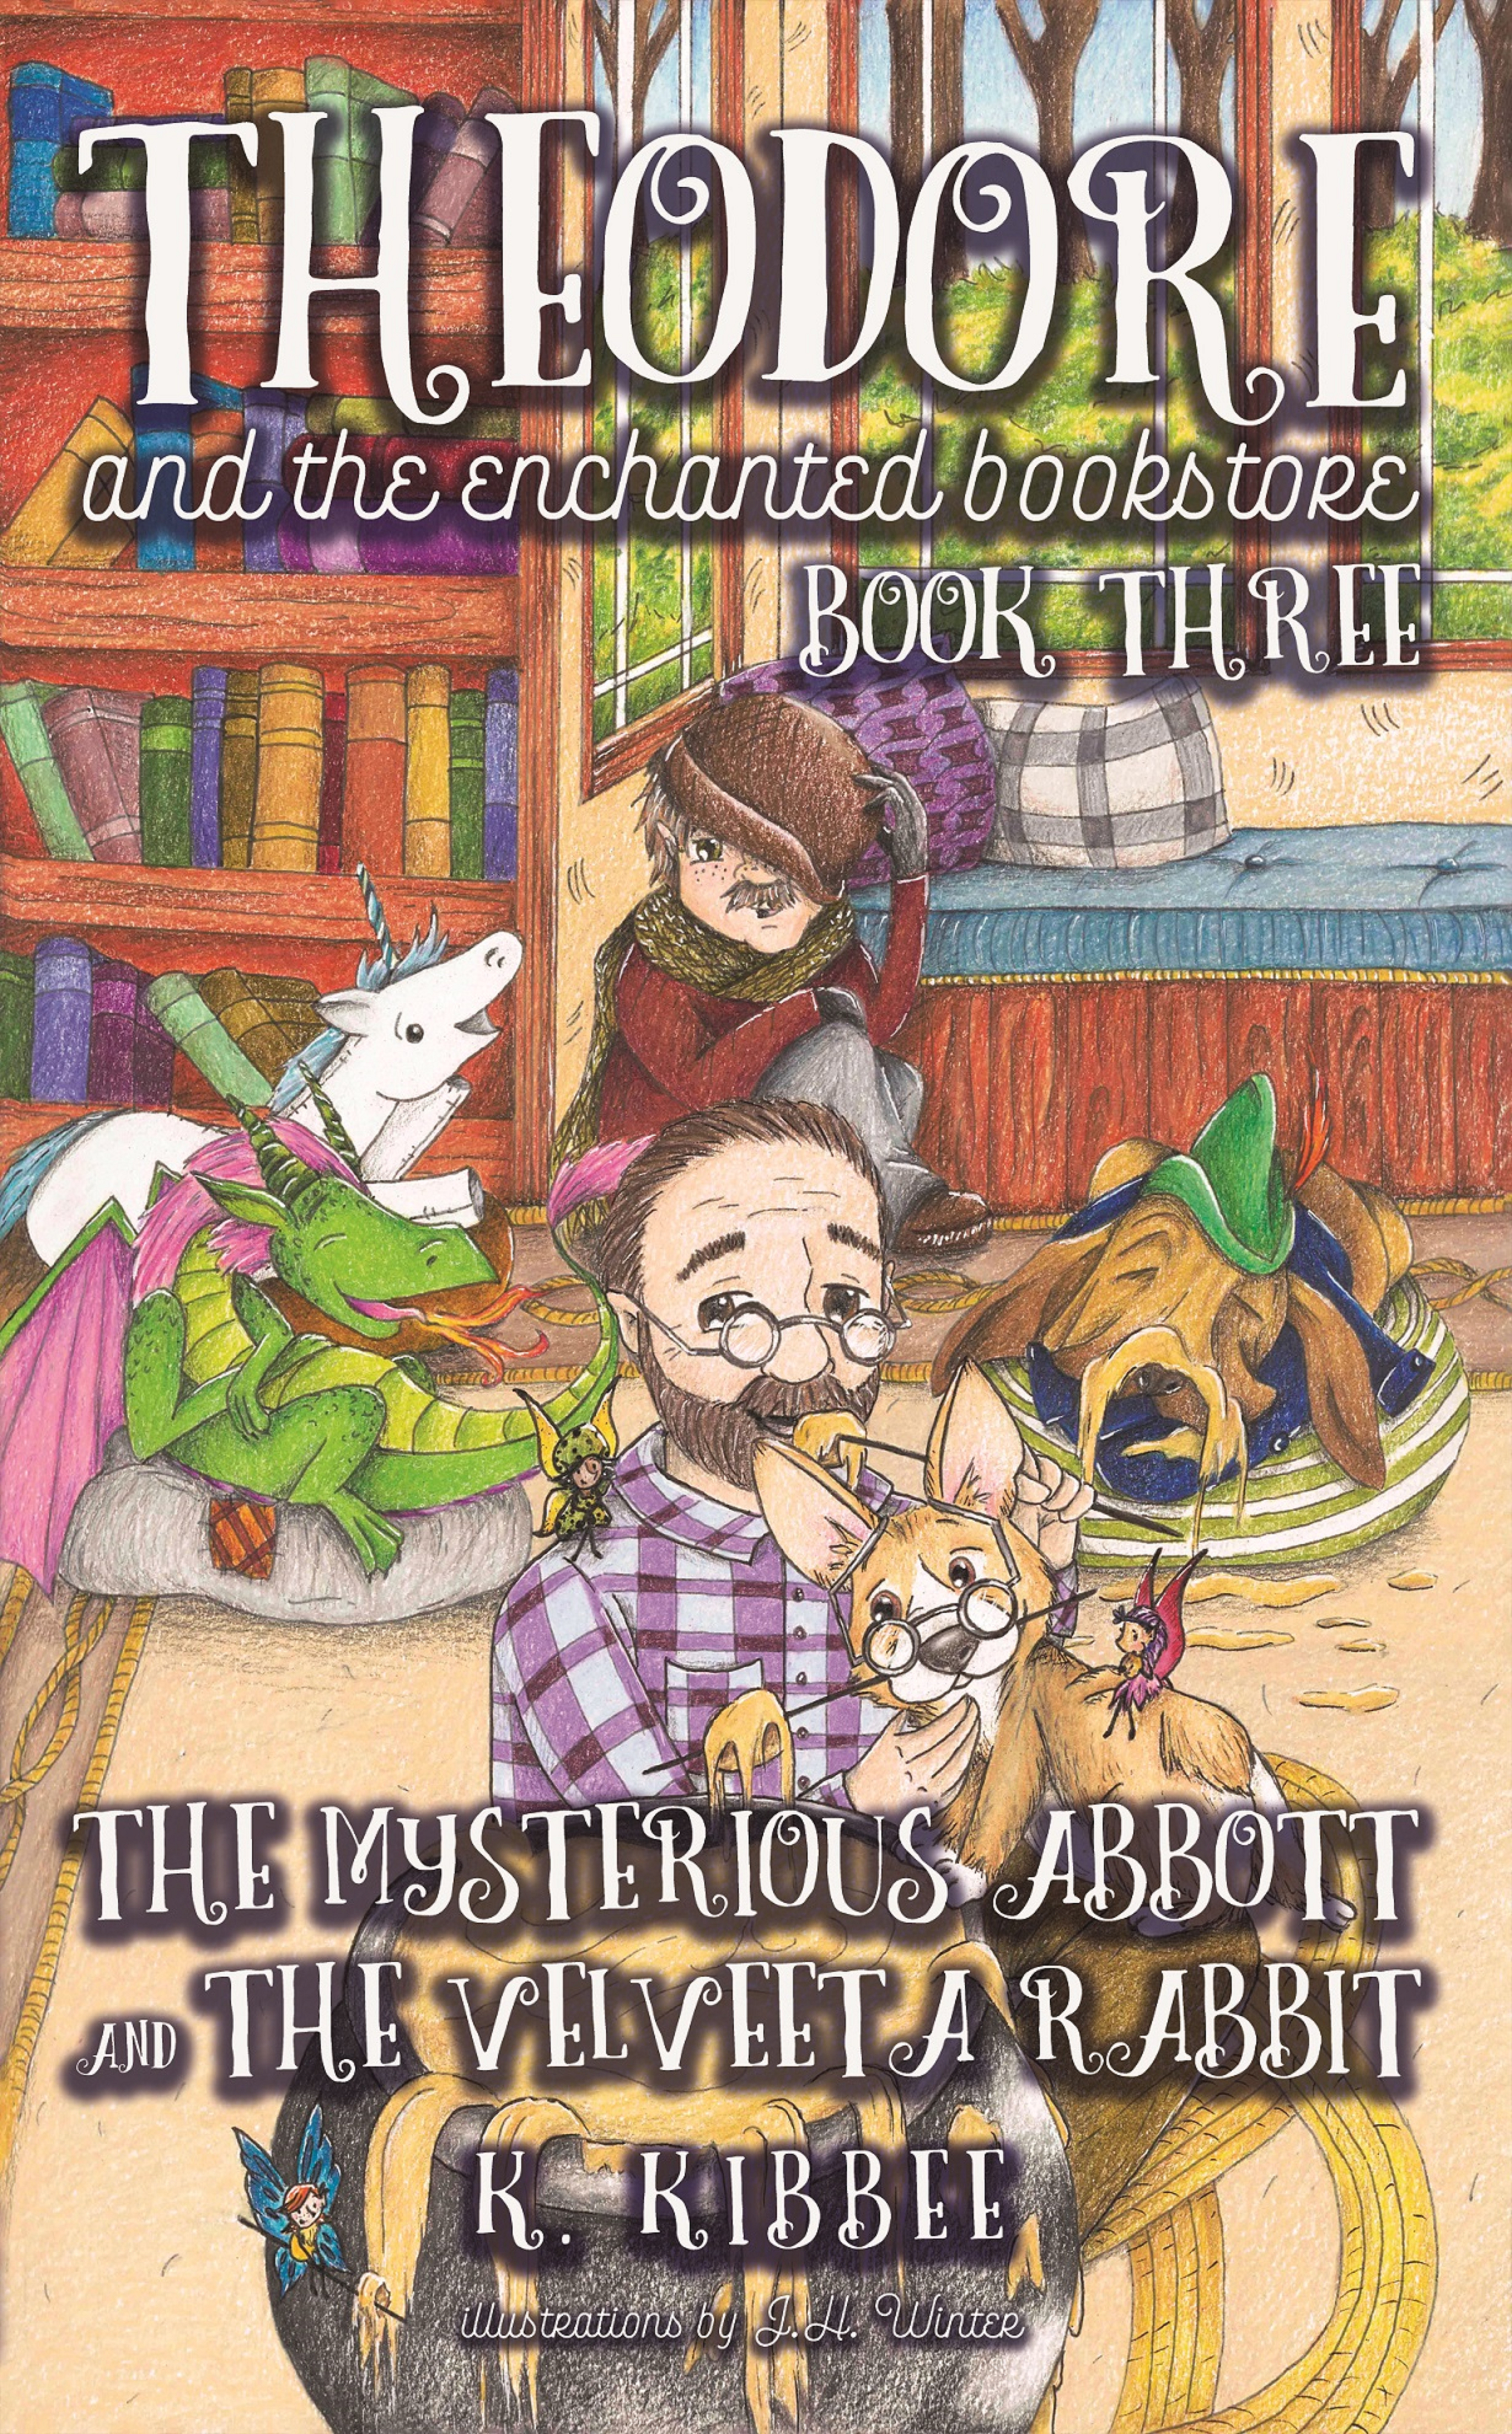 Mysterious Abbot & The Velveeta Rabbit